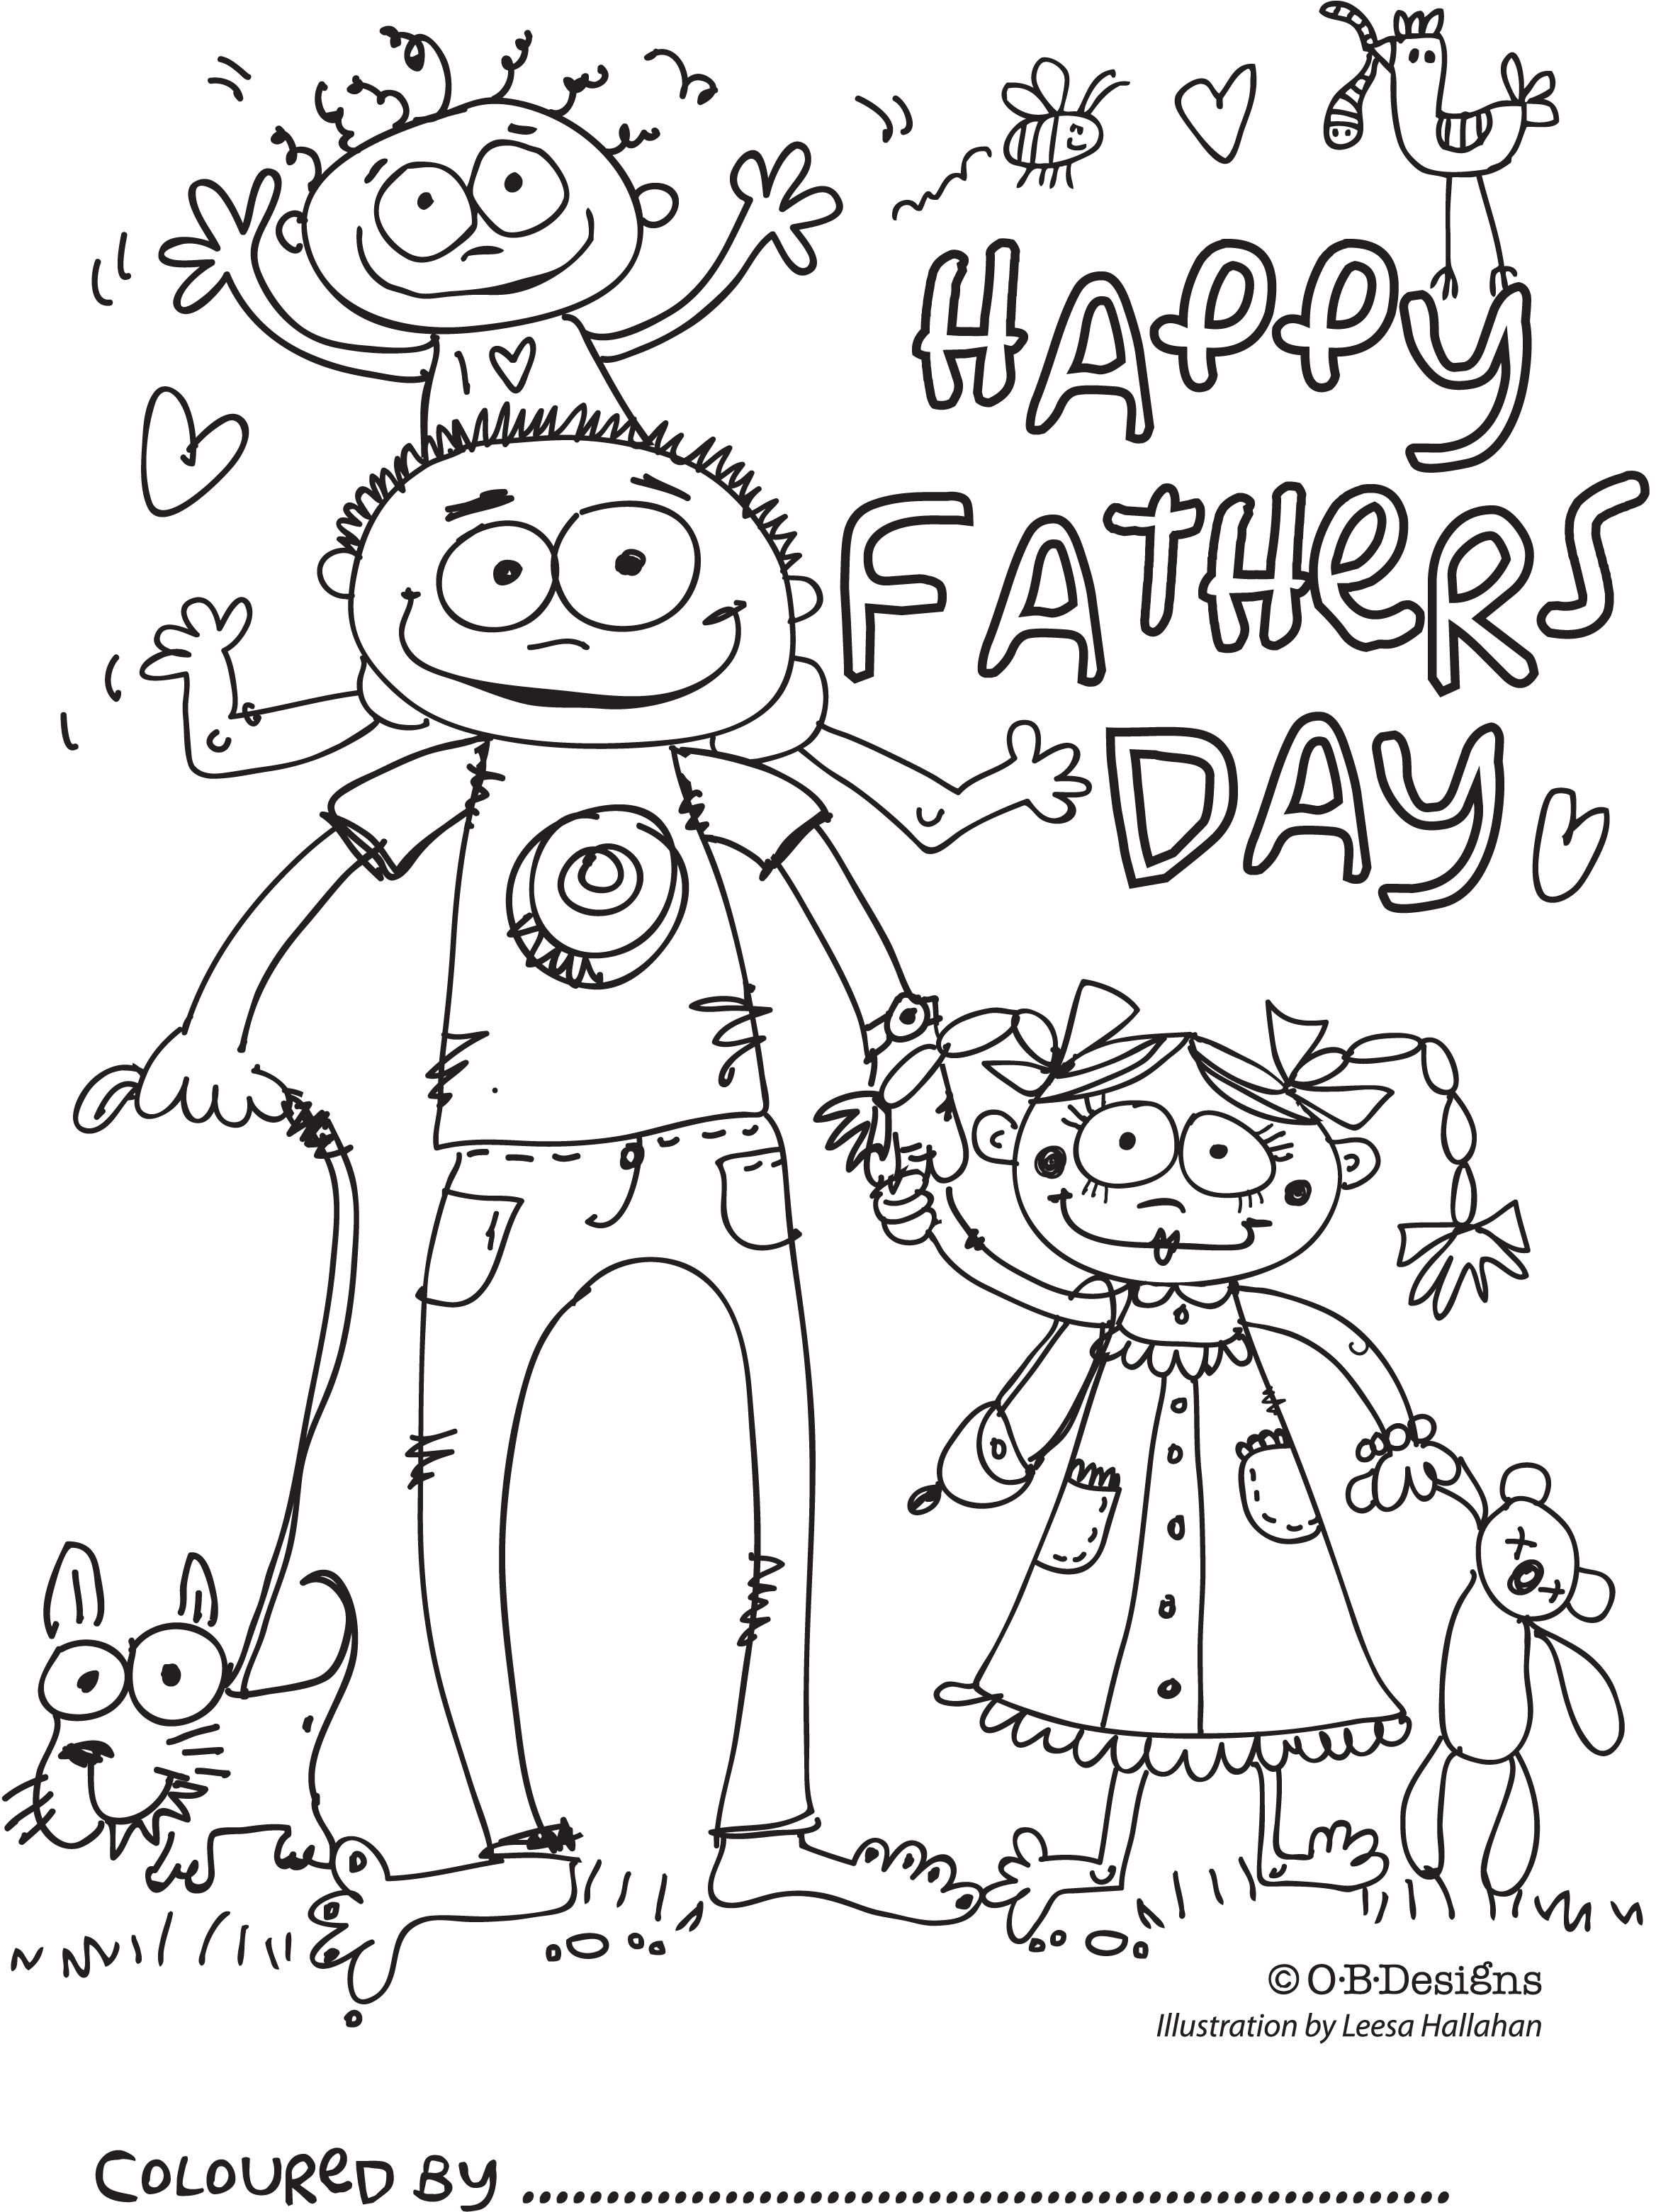 Printable Fathers Day Coloring Pages Ideas Free Coloring Sheets Fathers Day Coloring Page Happy Fathers Day Cards Father S Day Drawings